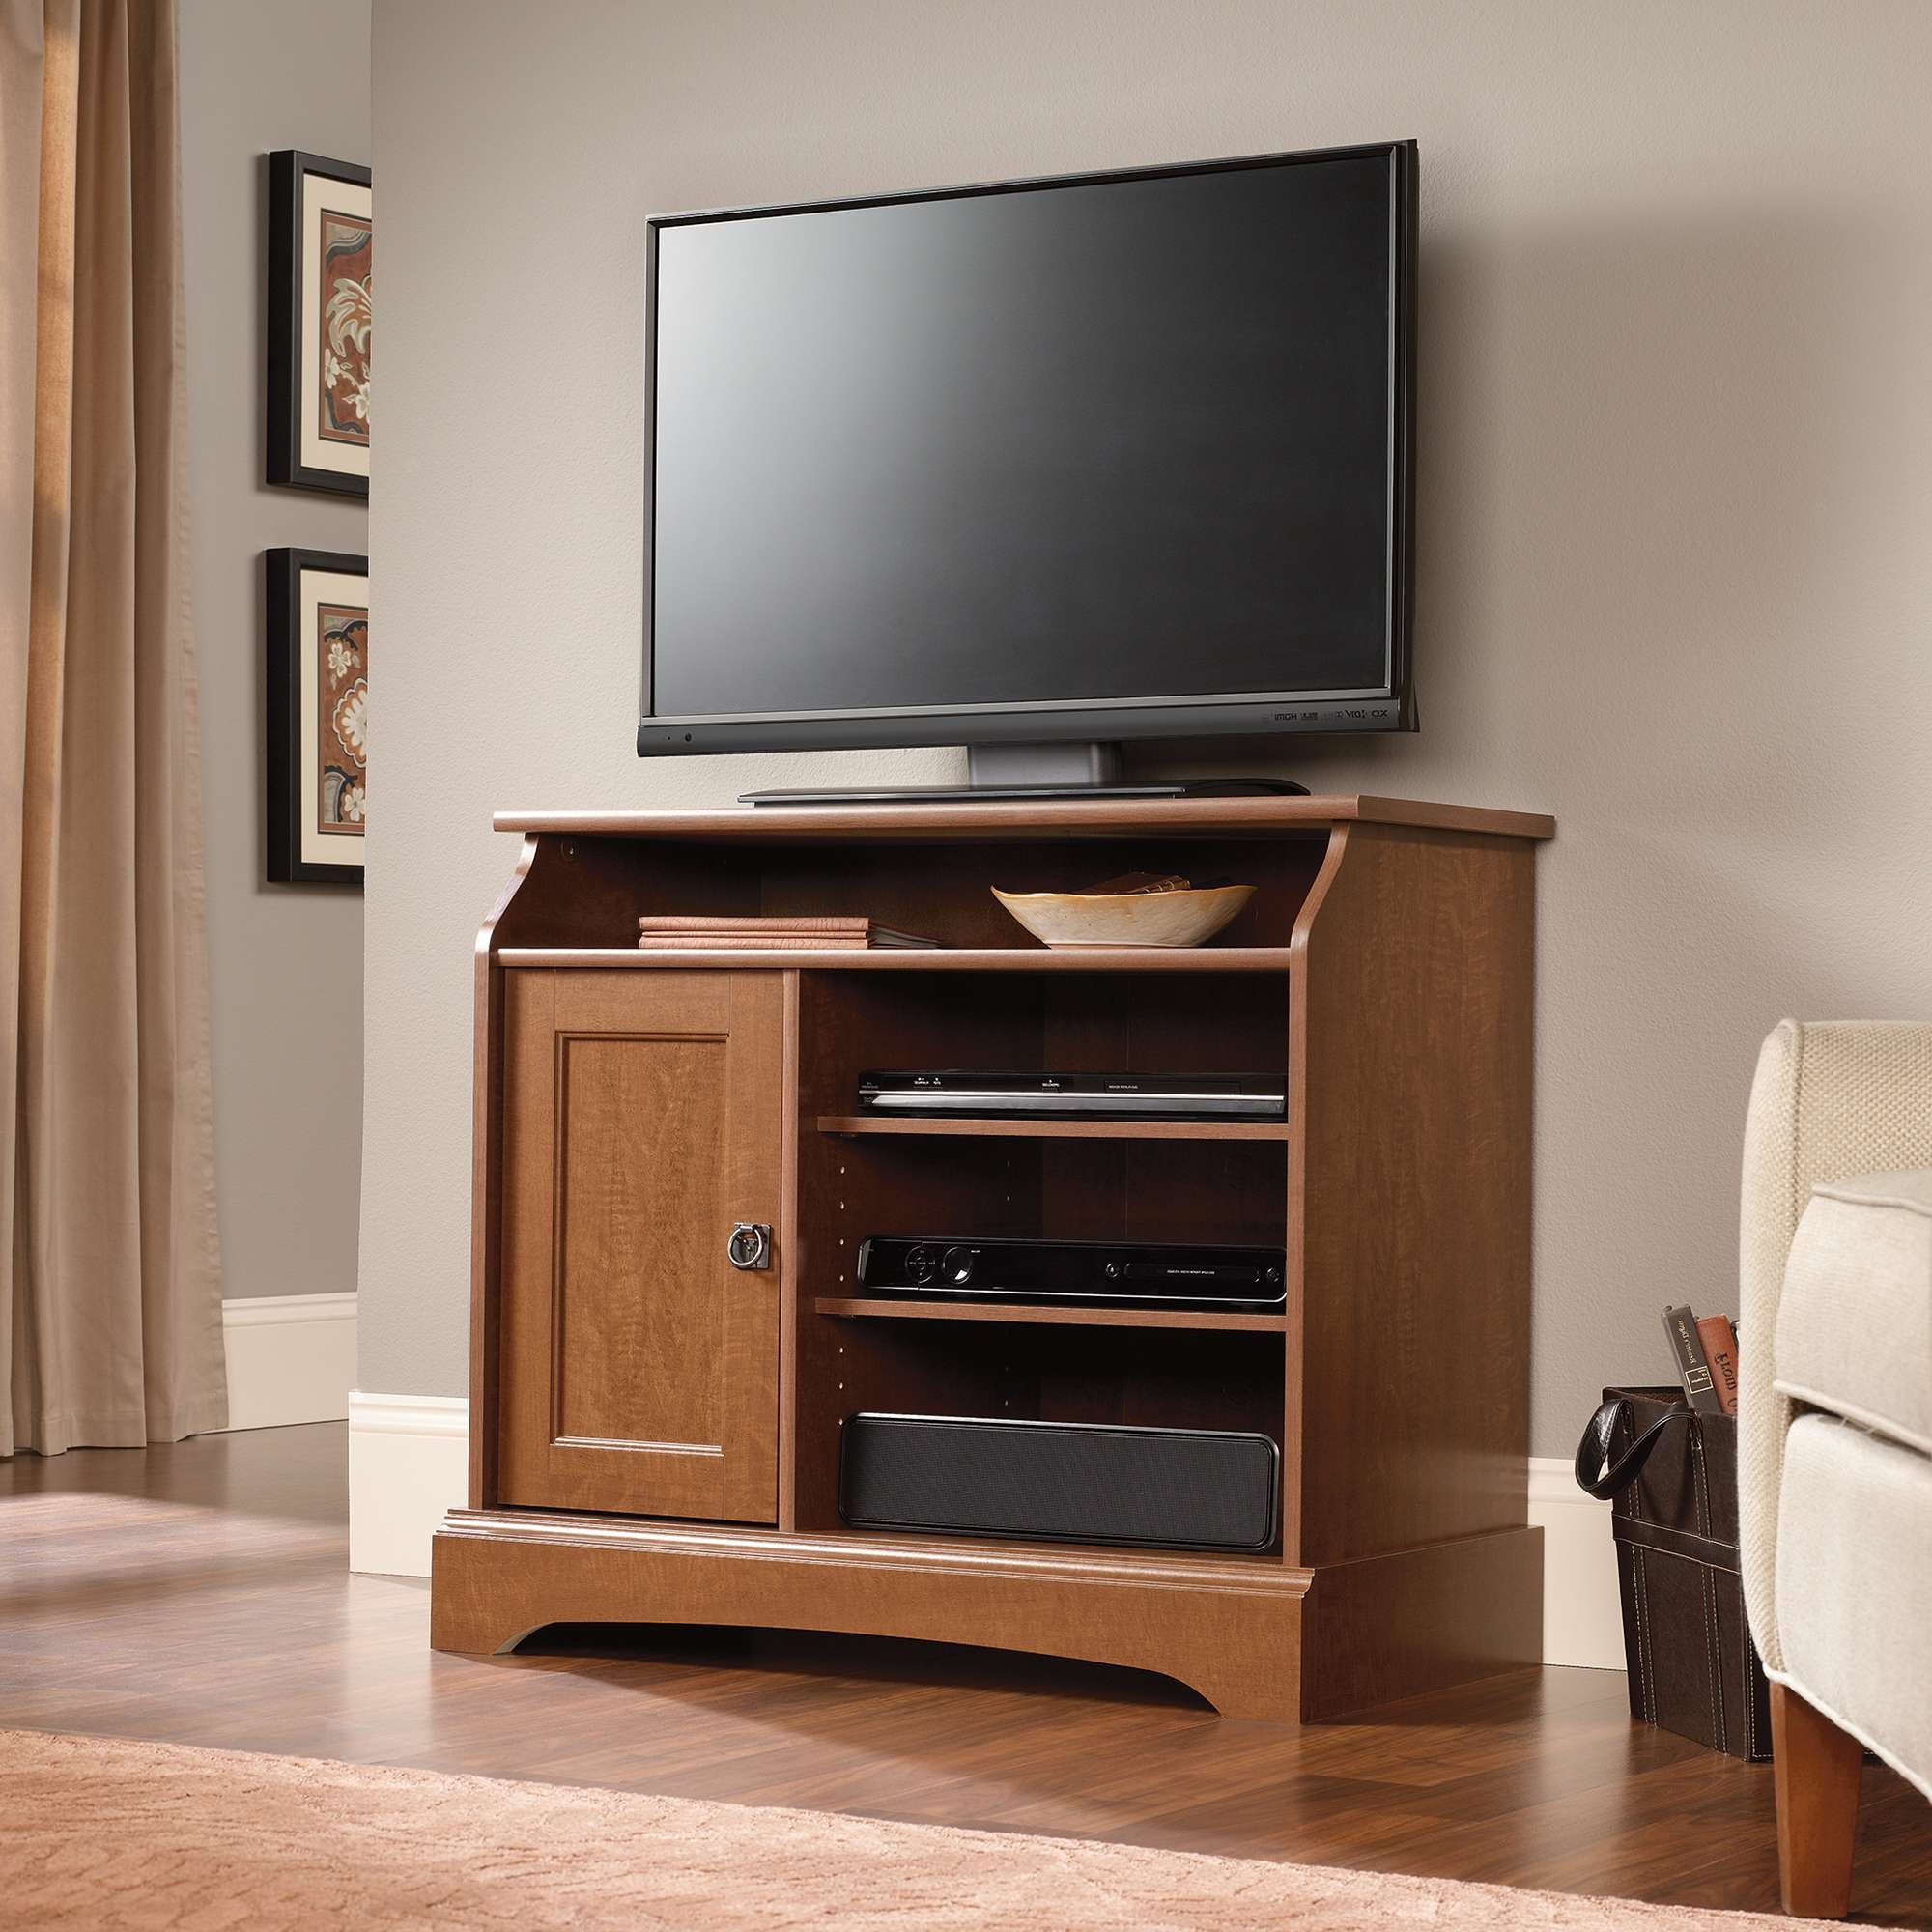 Sauder Select | Highboy Tv Stand | 408972 | Sauder With Maple Tv Stands (View 15 of 20)